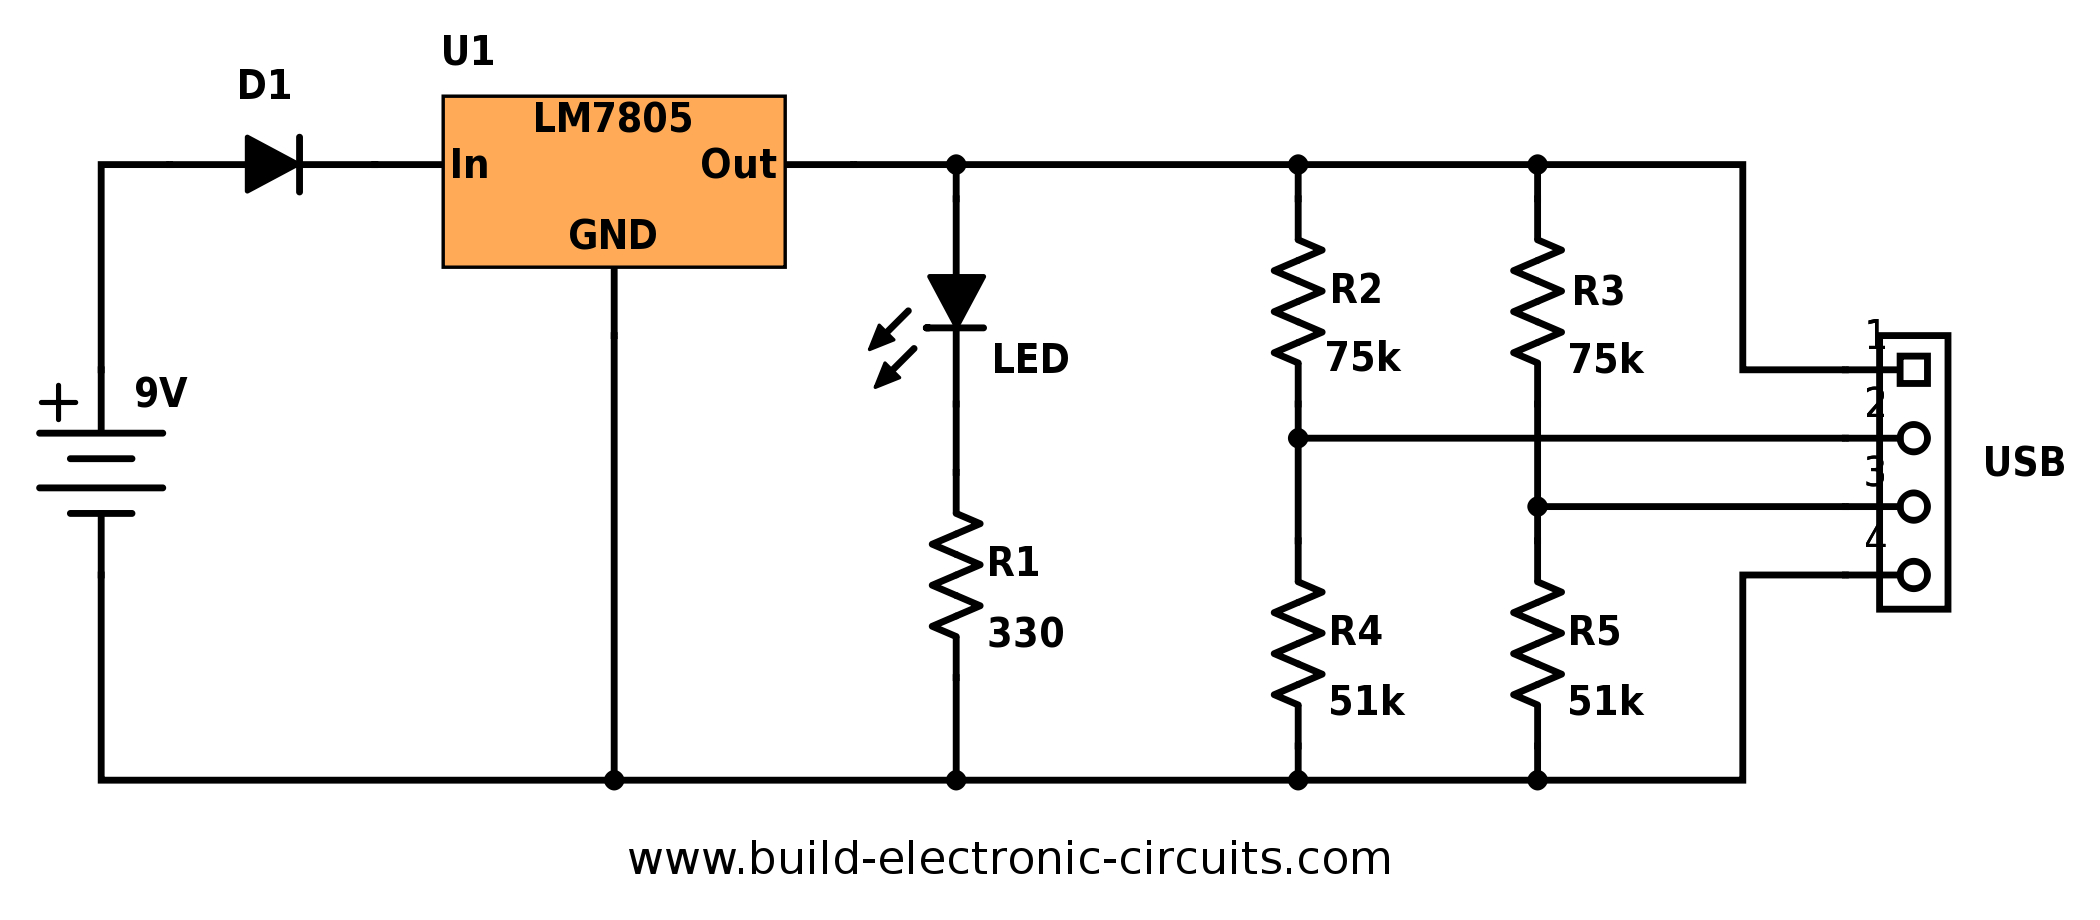 Portable Usb Charger Circuit - Build Electronic Circuits - Usb C Charger Wiring Diagram